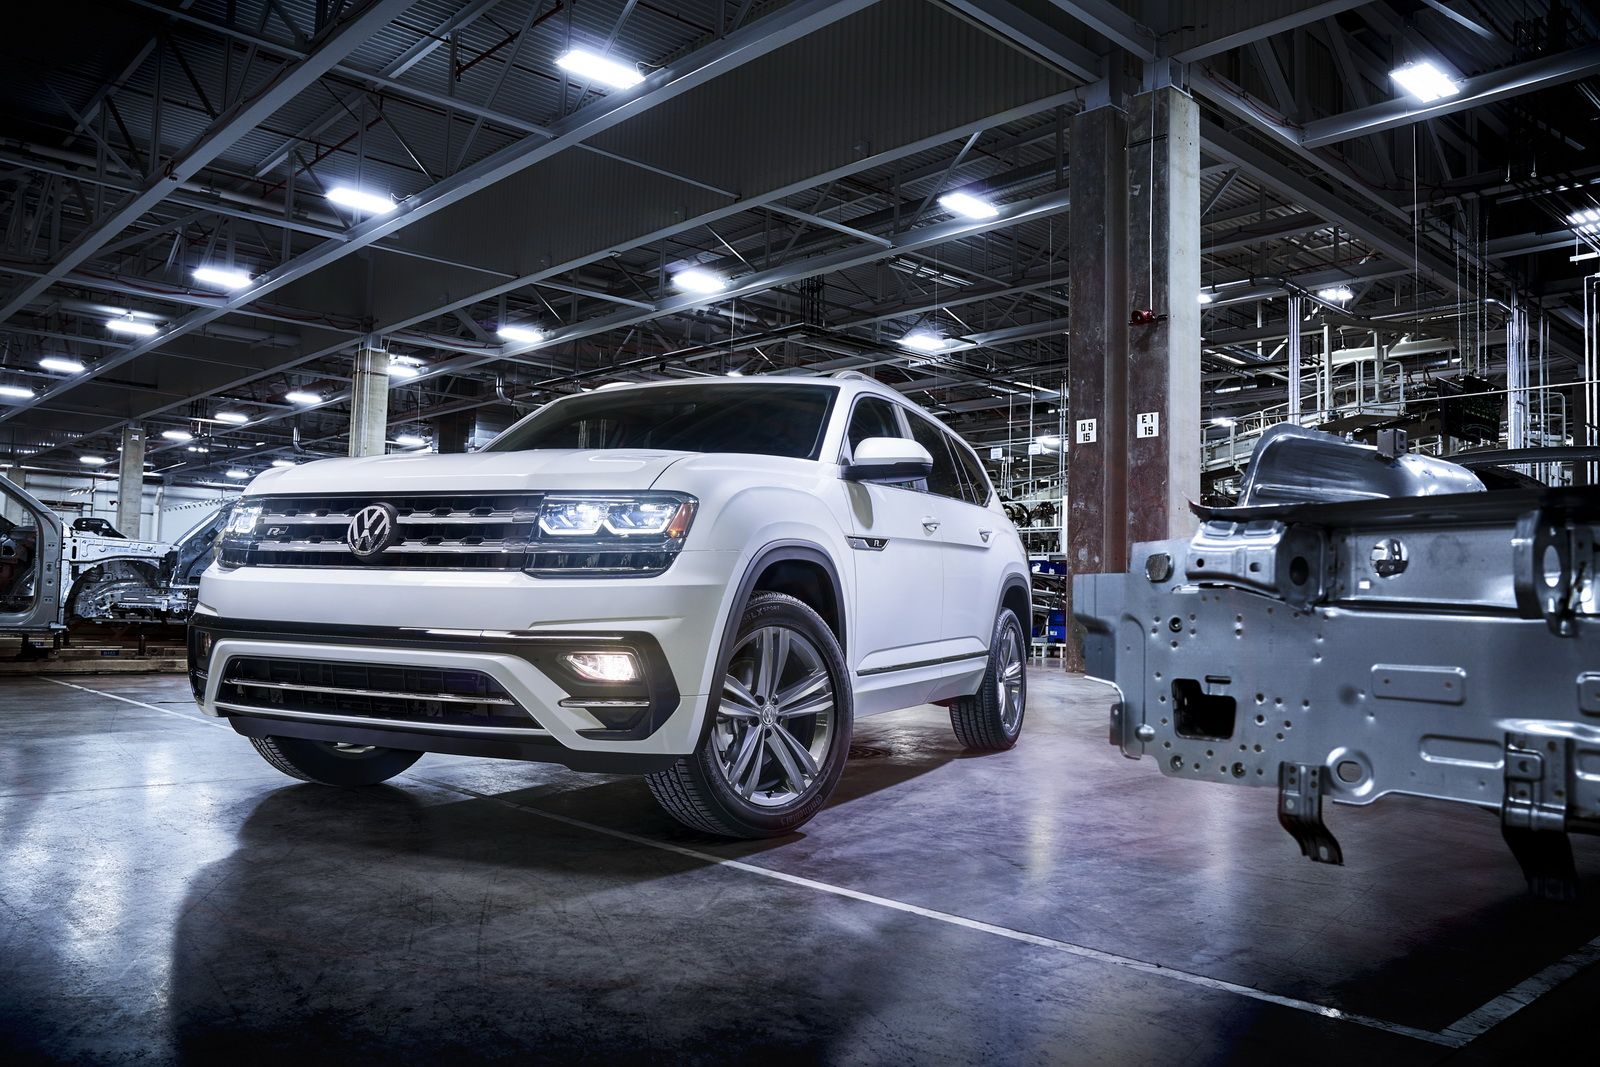 vw adds some spark to 2018 atlas suv with new r line package rh pinterest com